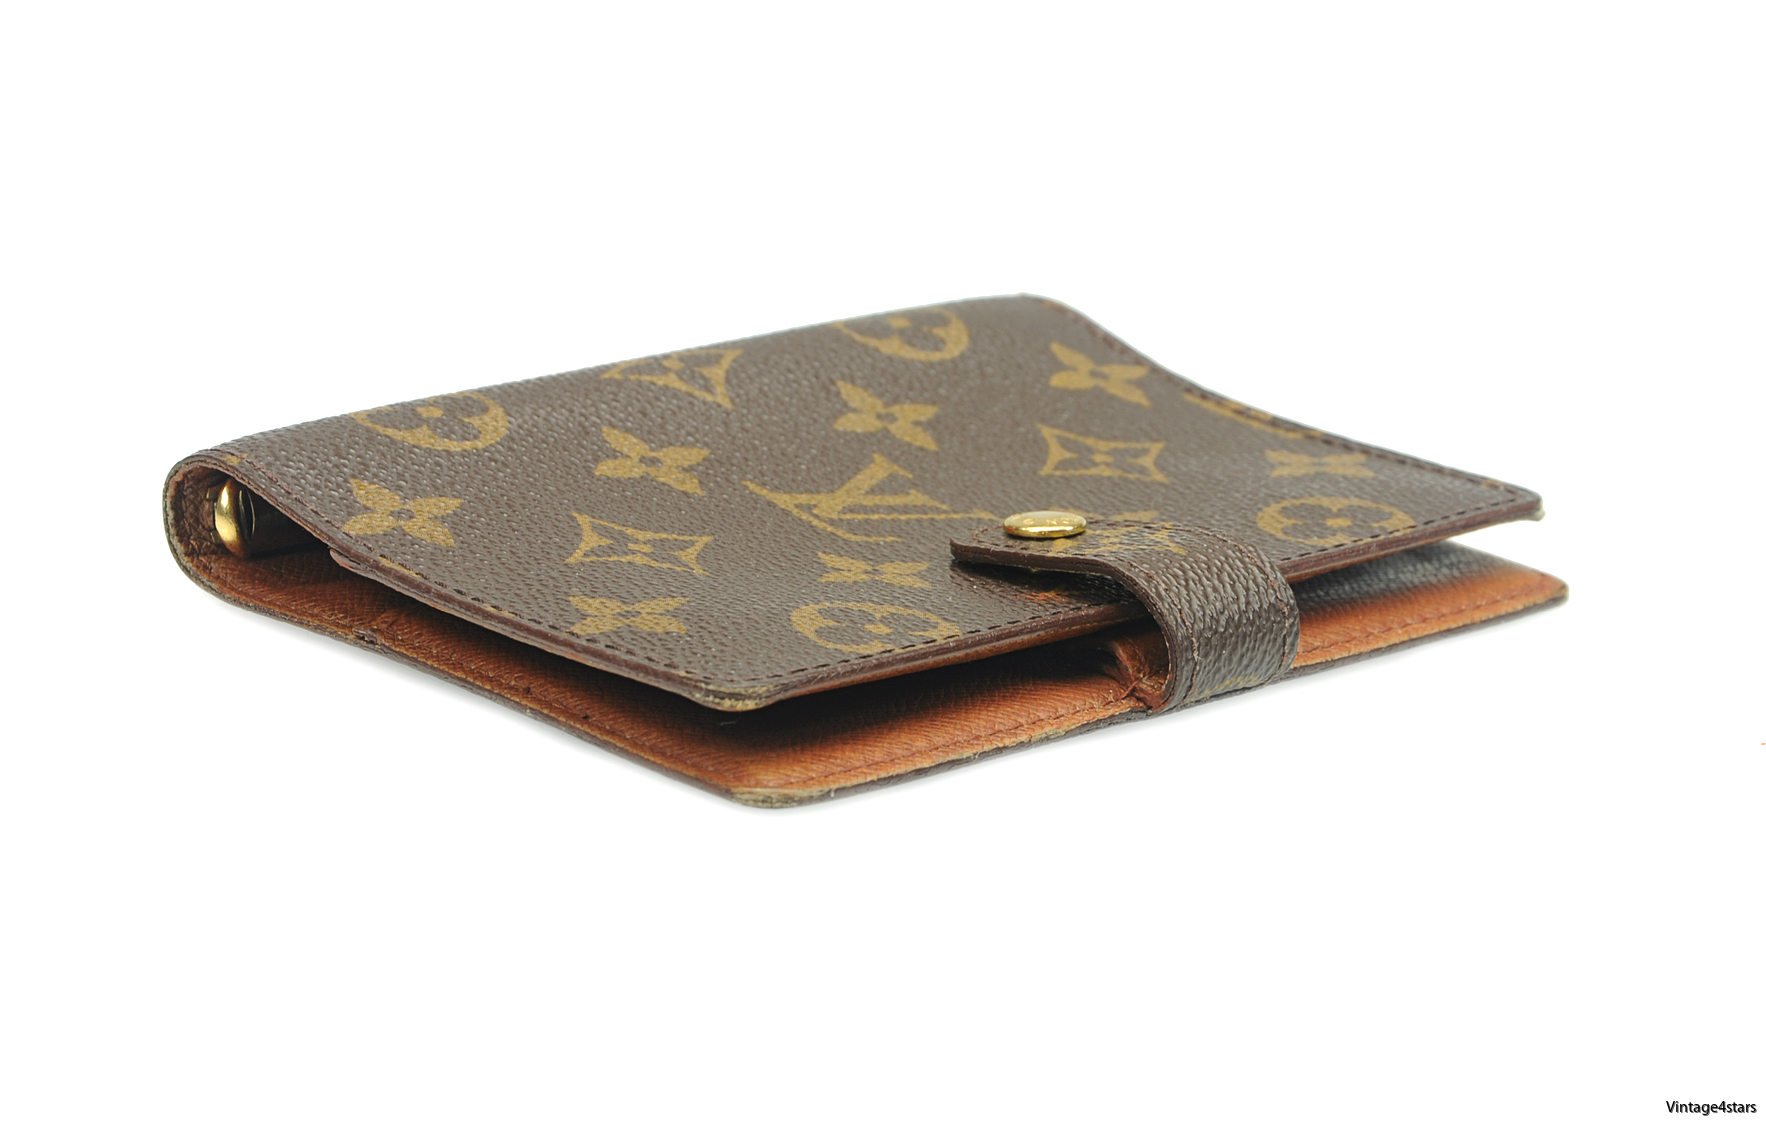 Louis Vuitton Agenda PM 1